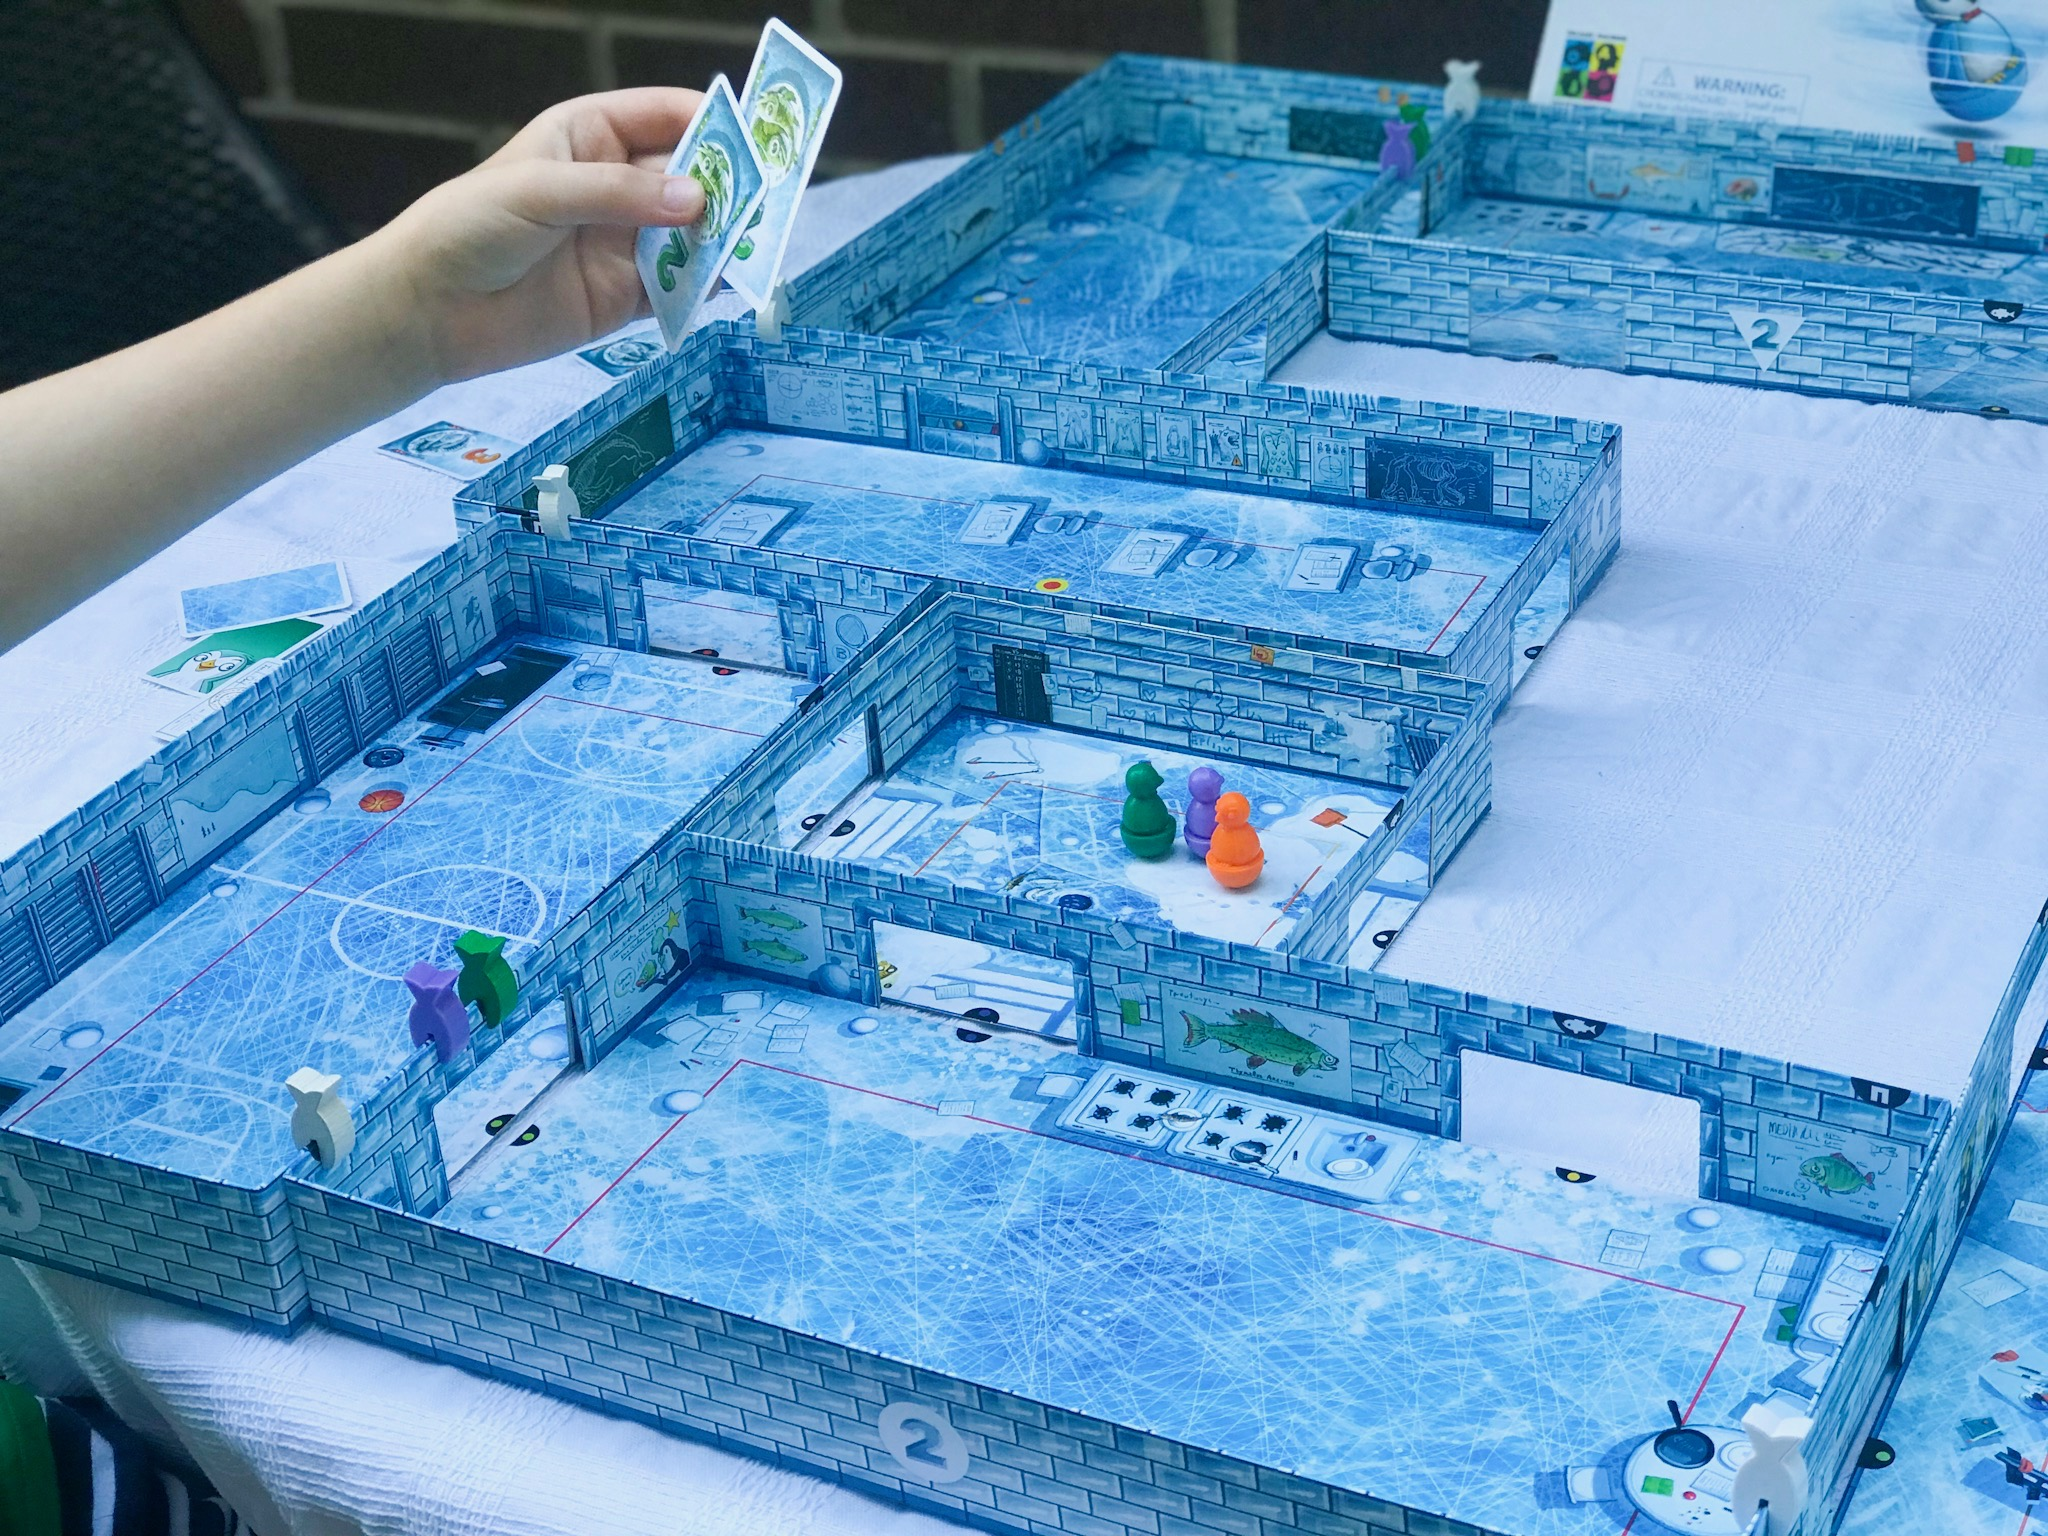 ICECOOL and ICECOOL2 family board game 11.jpeg